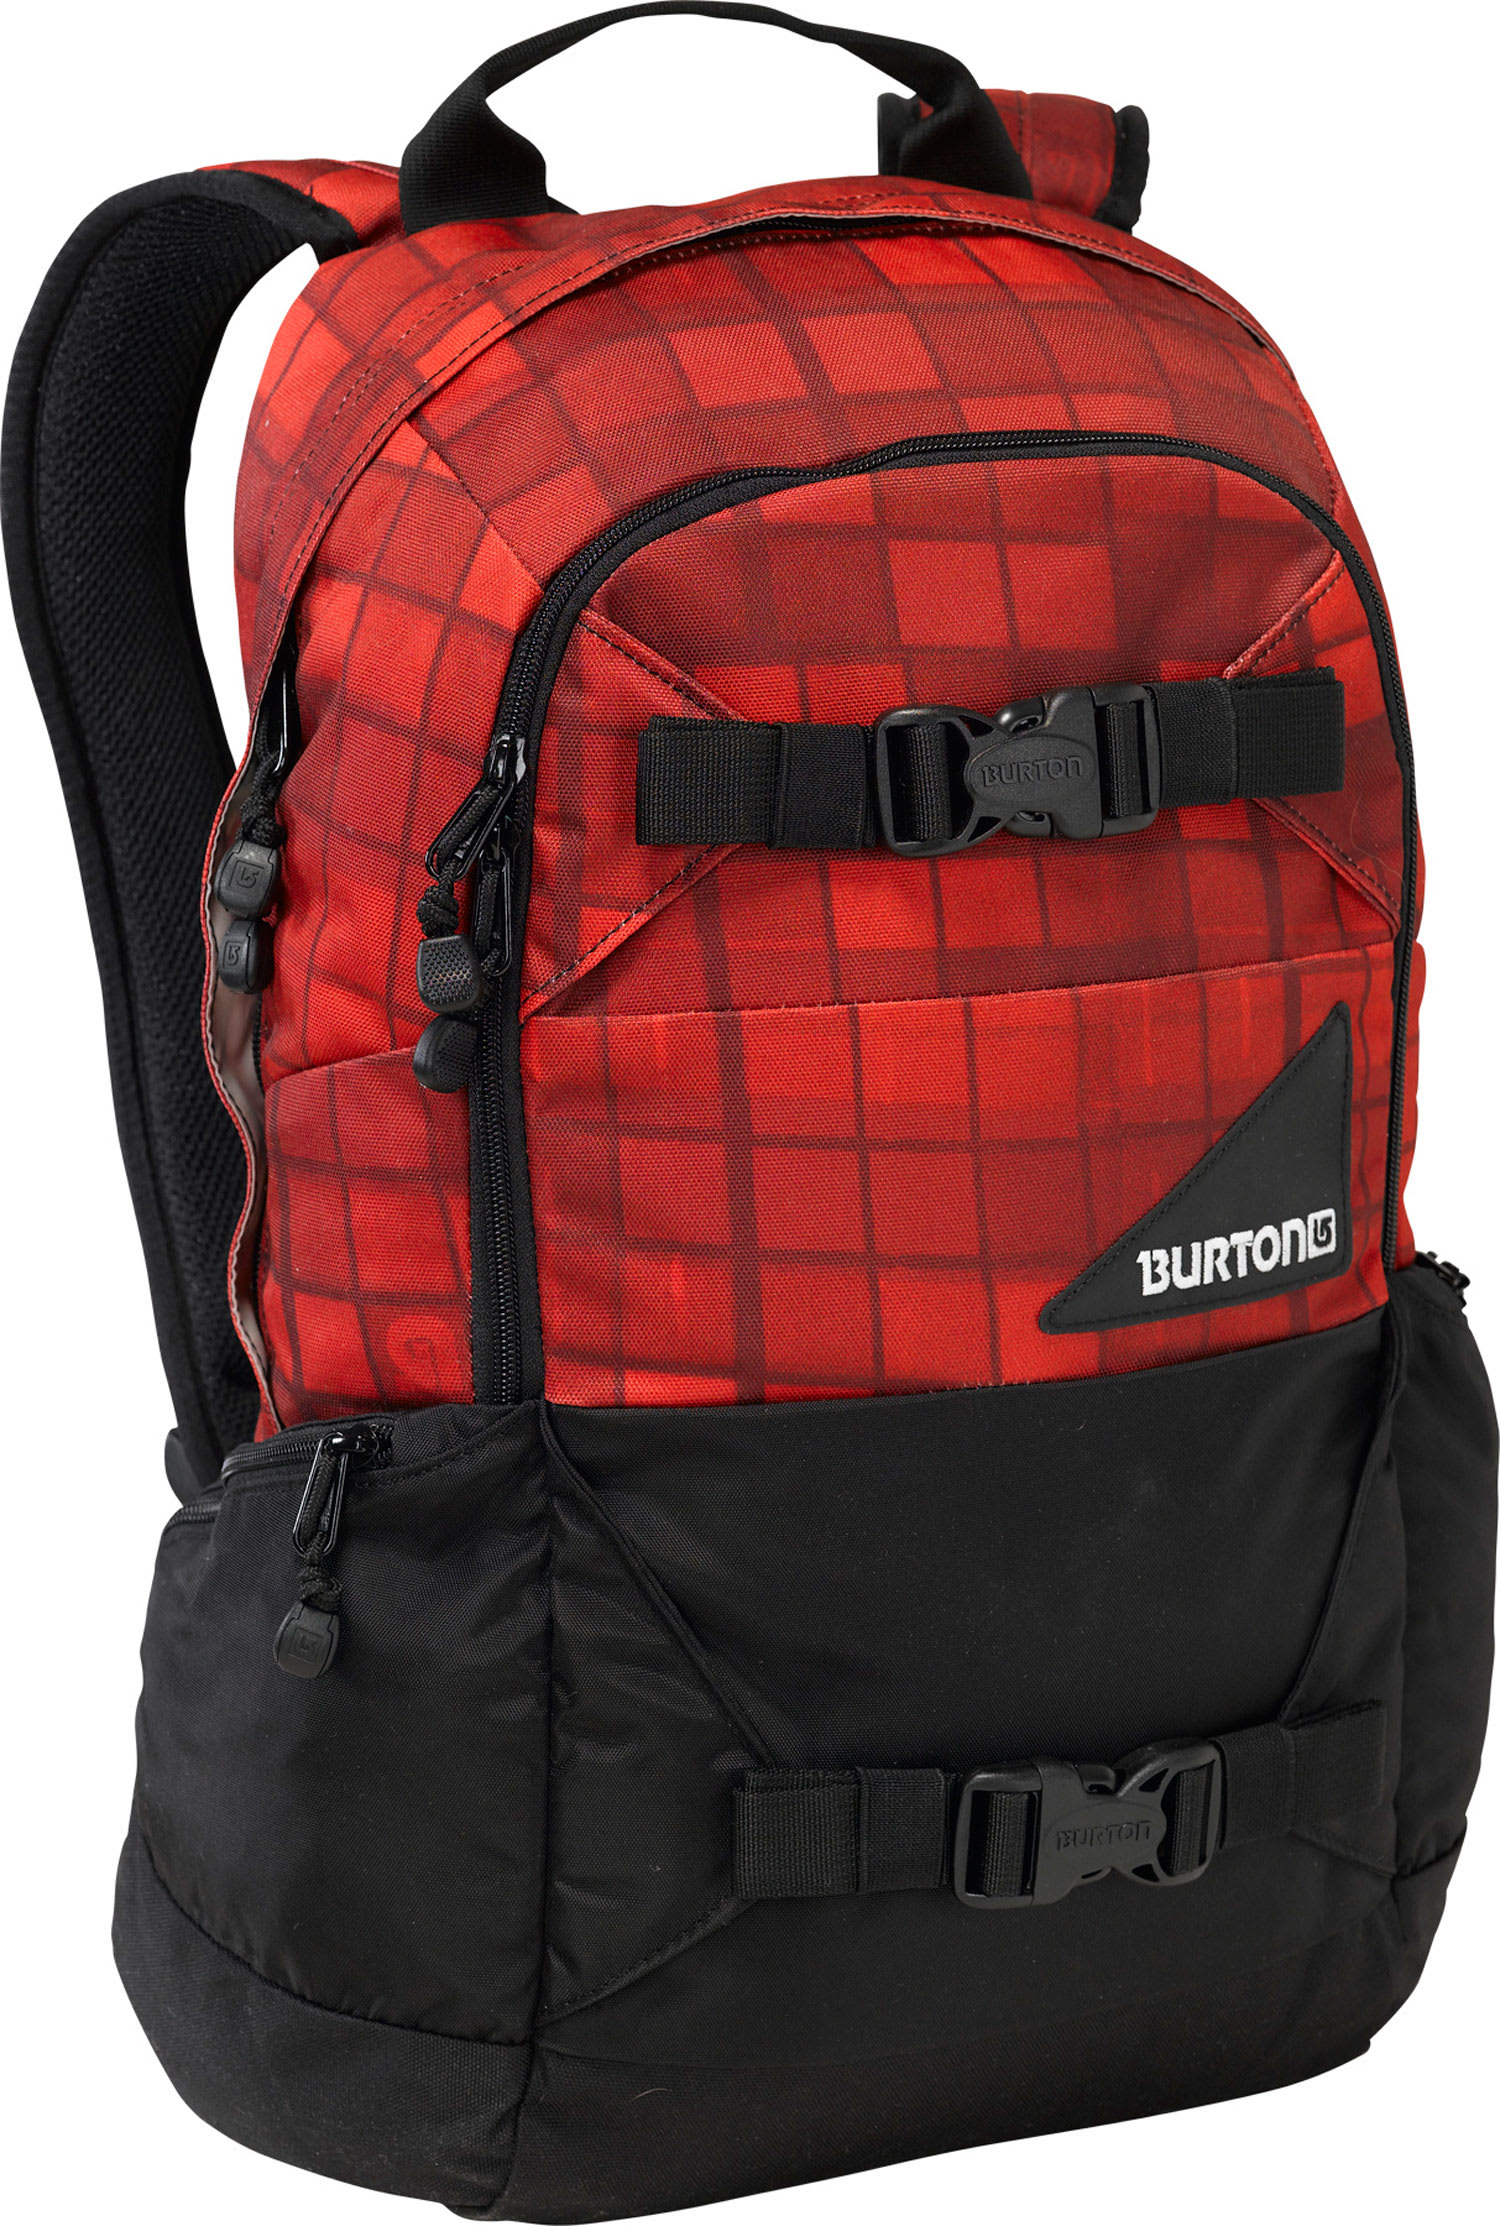 Shop for Burton Day Hiker 20L Backpack Red Rhombus - Men's